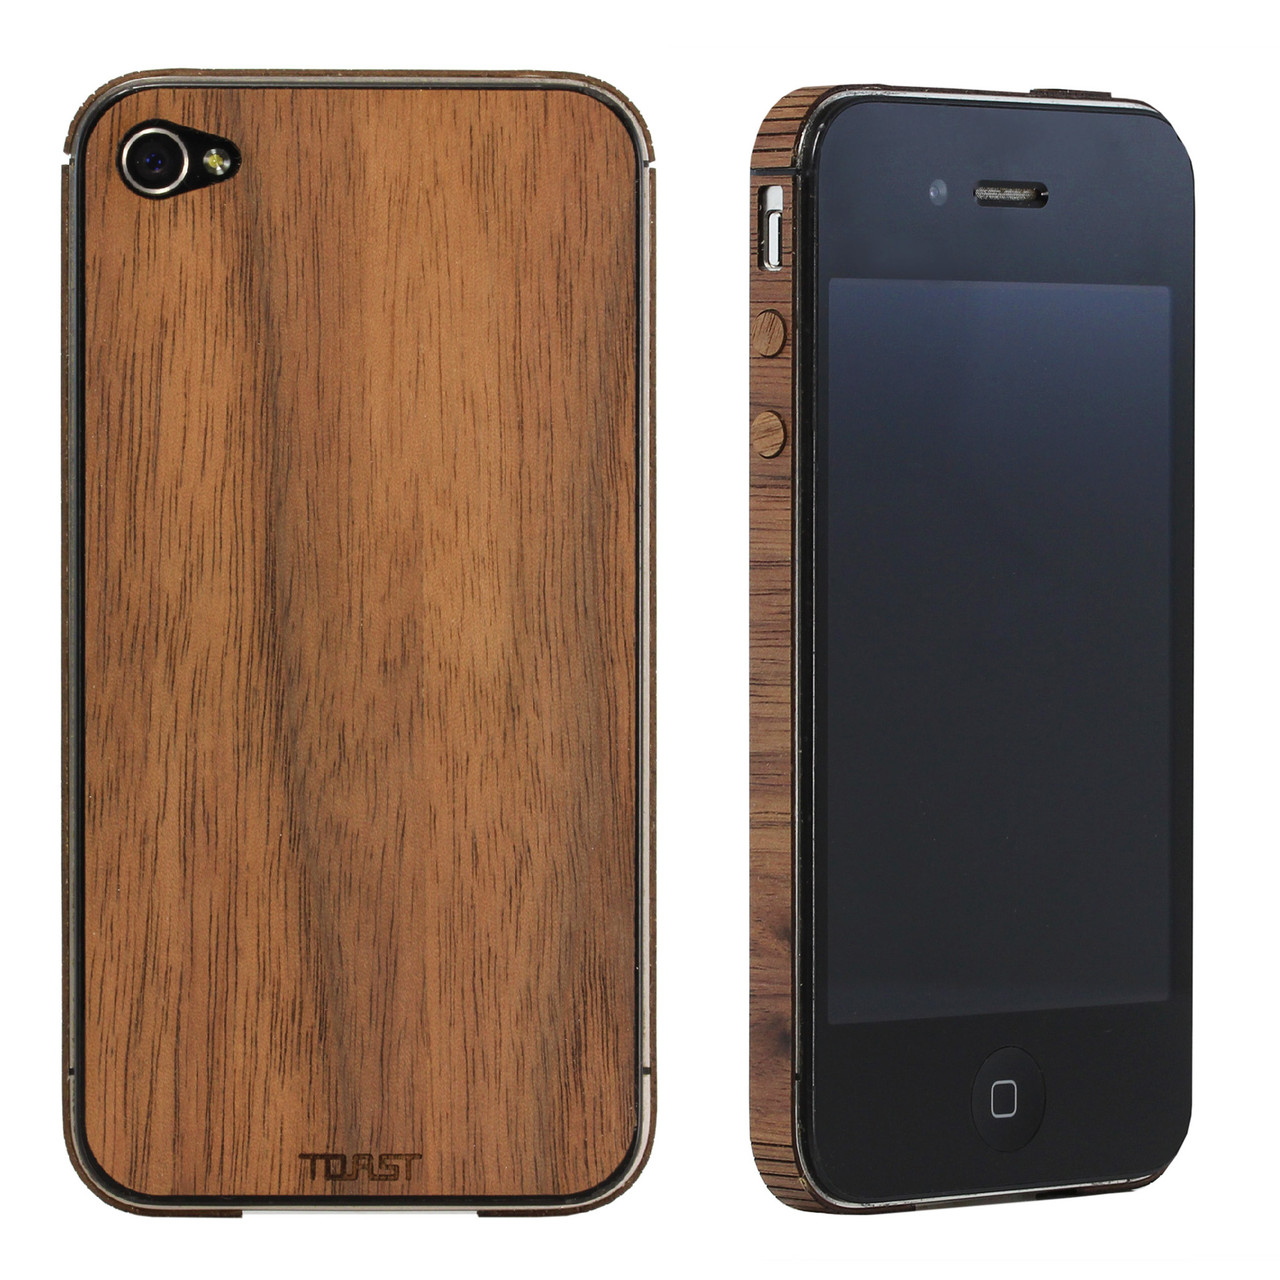 watch 28dd2 e74f7 iPhone 5s / 5C wood cover